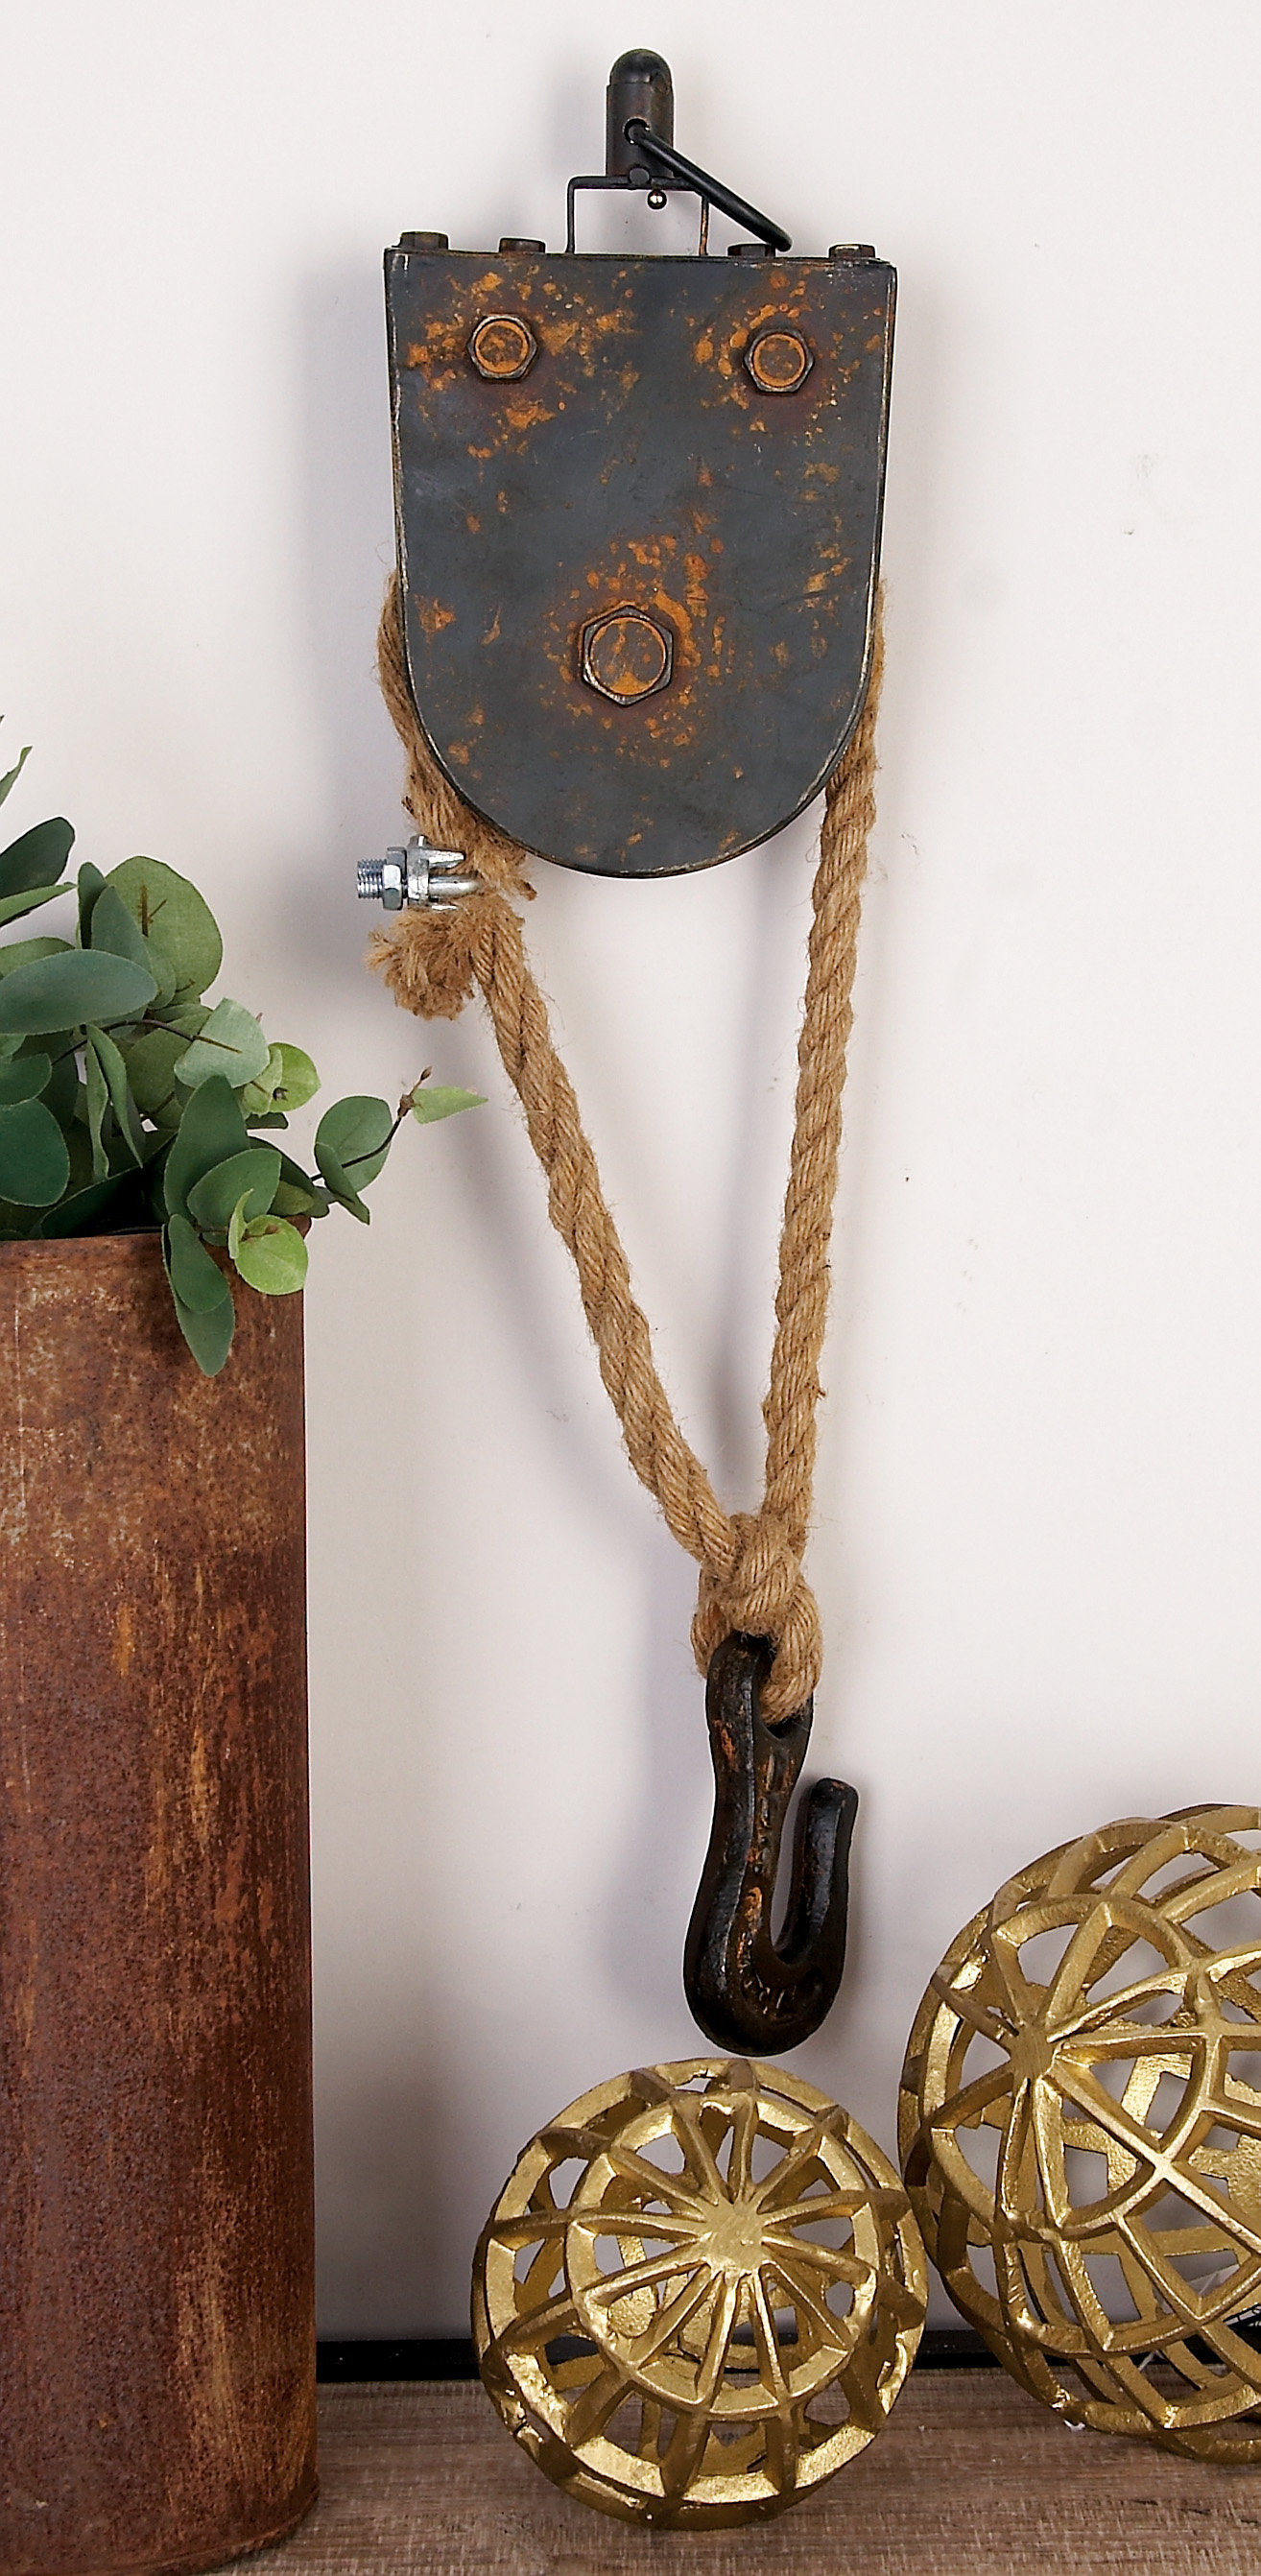 Metal Rope Block Tackle Wall Décor Inside Metal Rope Wall Sign Wall Decor (View 16 of 30)